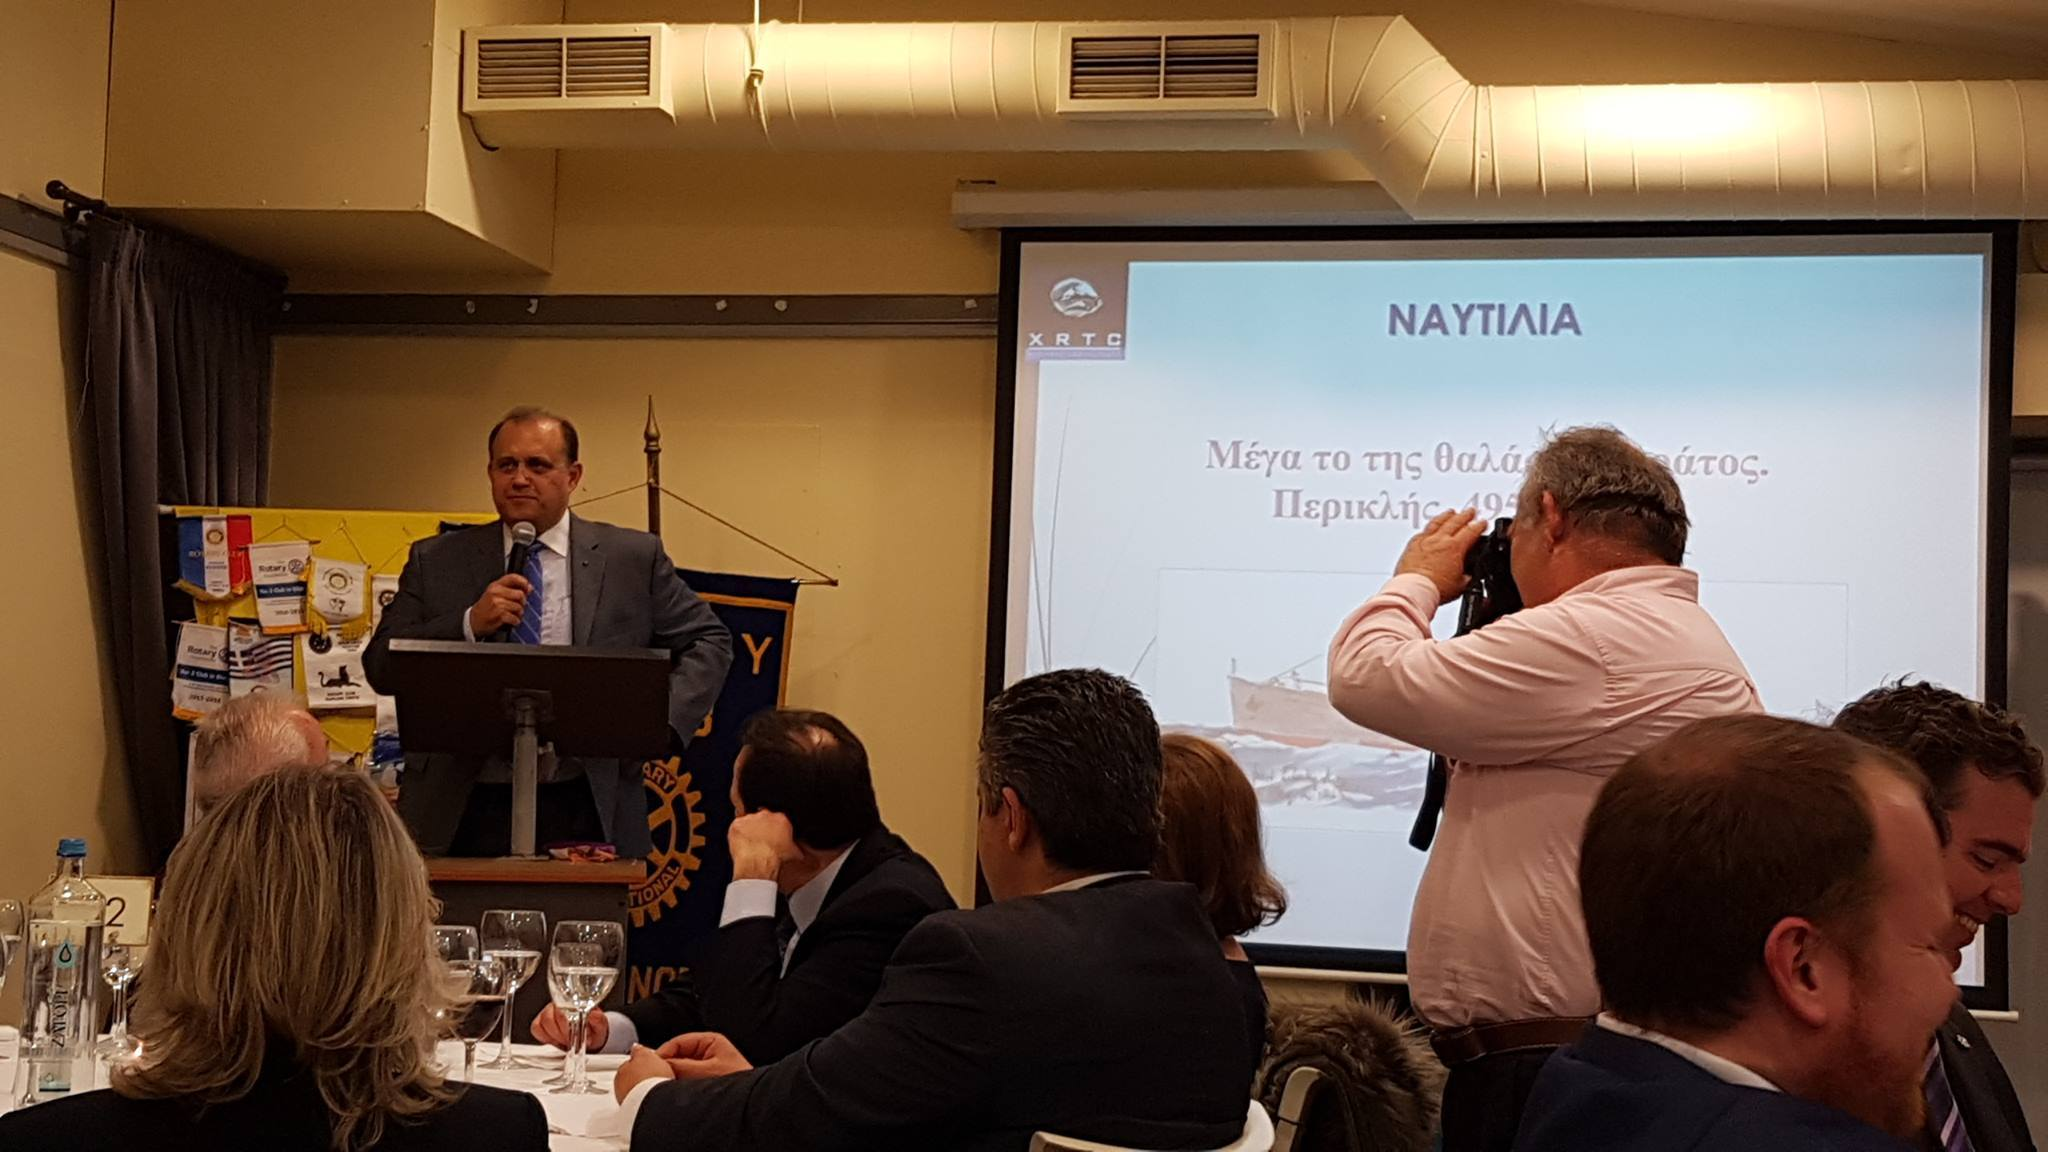 Nick Larigakis providing a greeting at a dinner hosted by the Rotary Club of Maroussi.